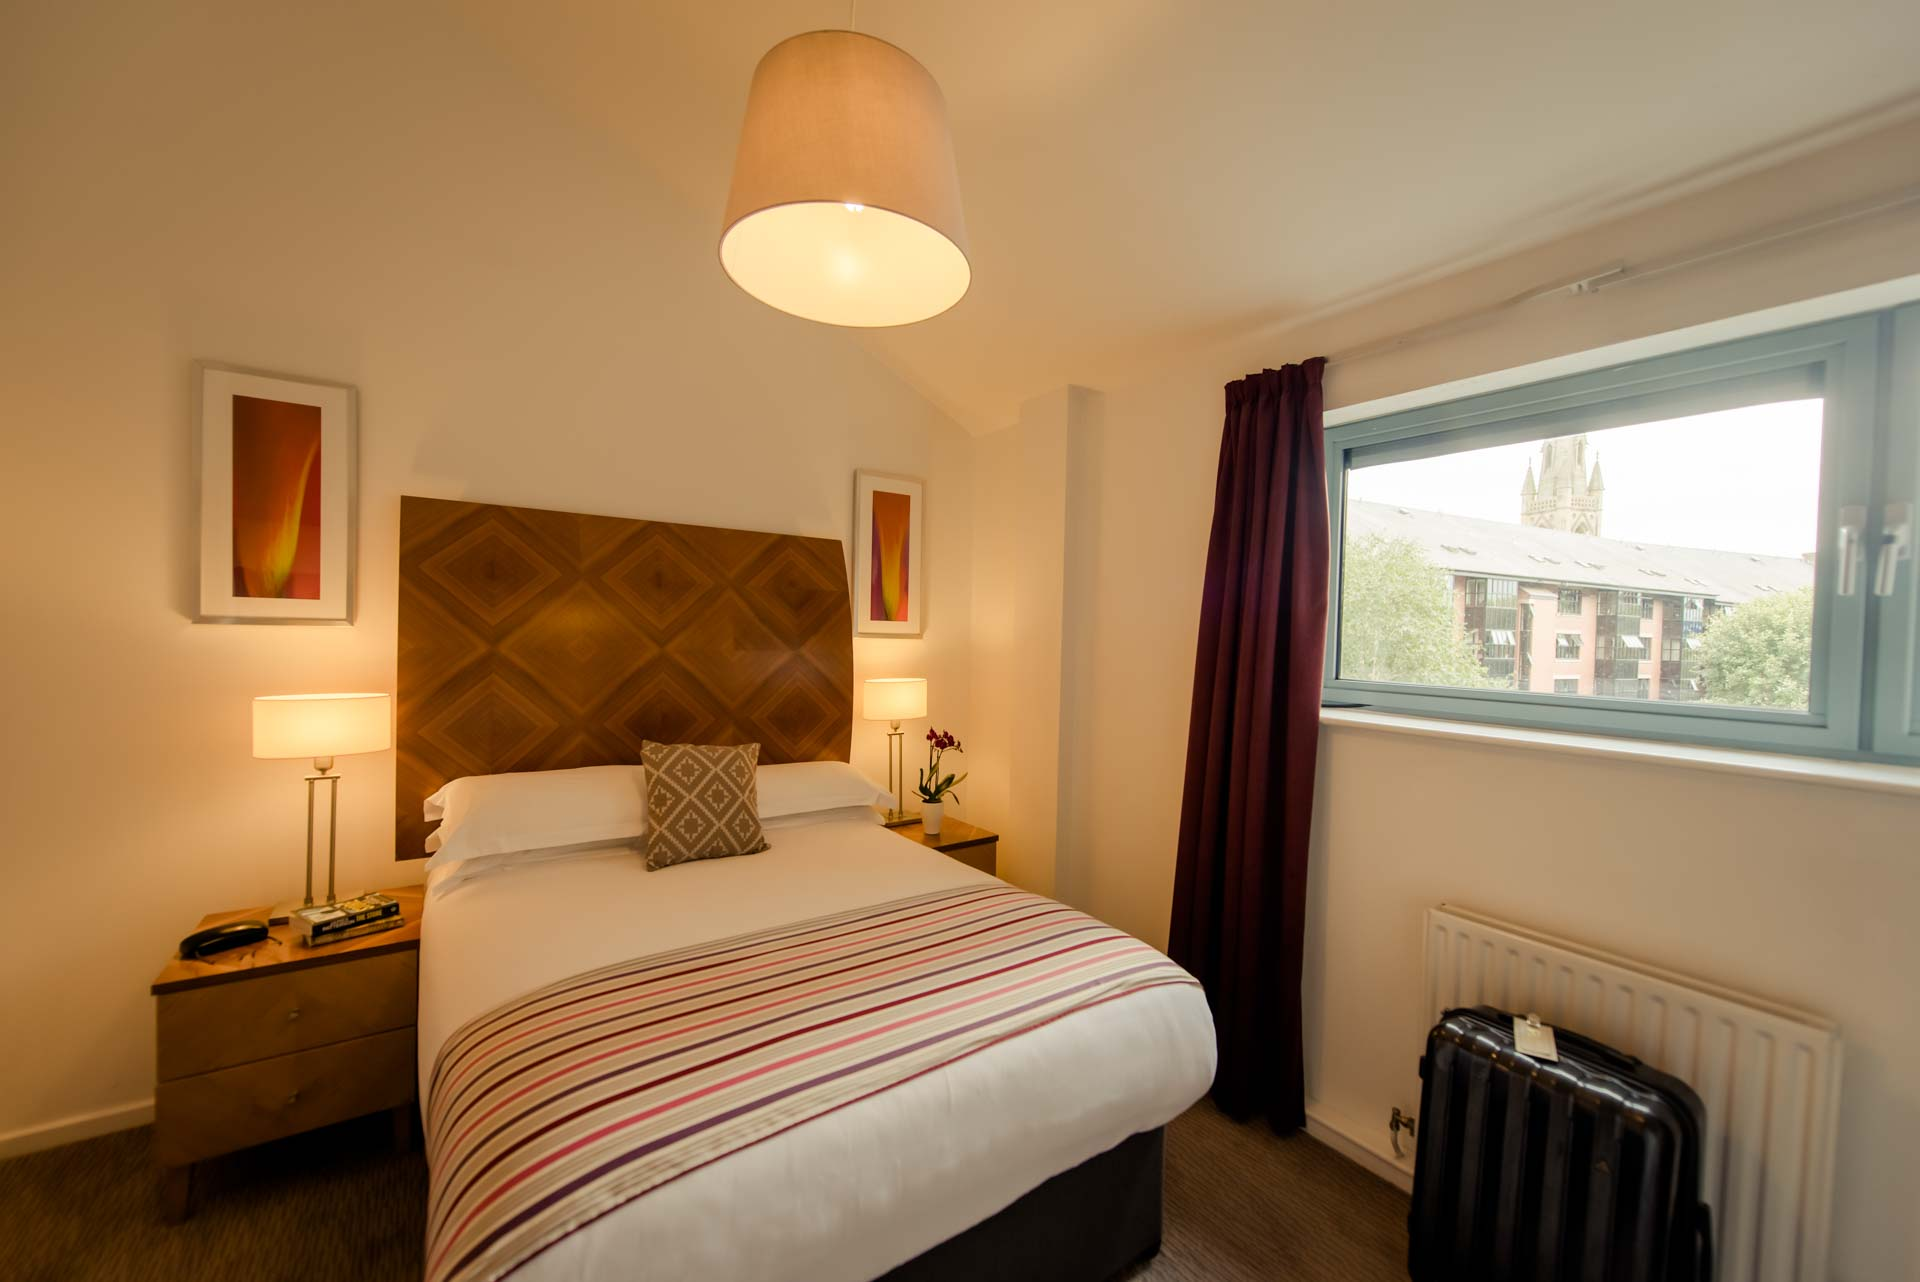 PREMIER SUITES Newcastle double bedroom with view of the city from the window